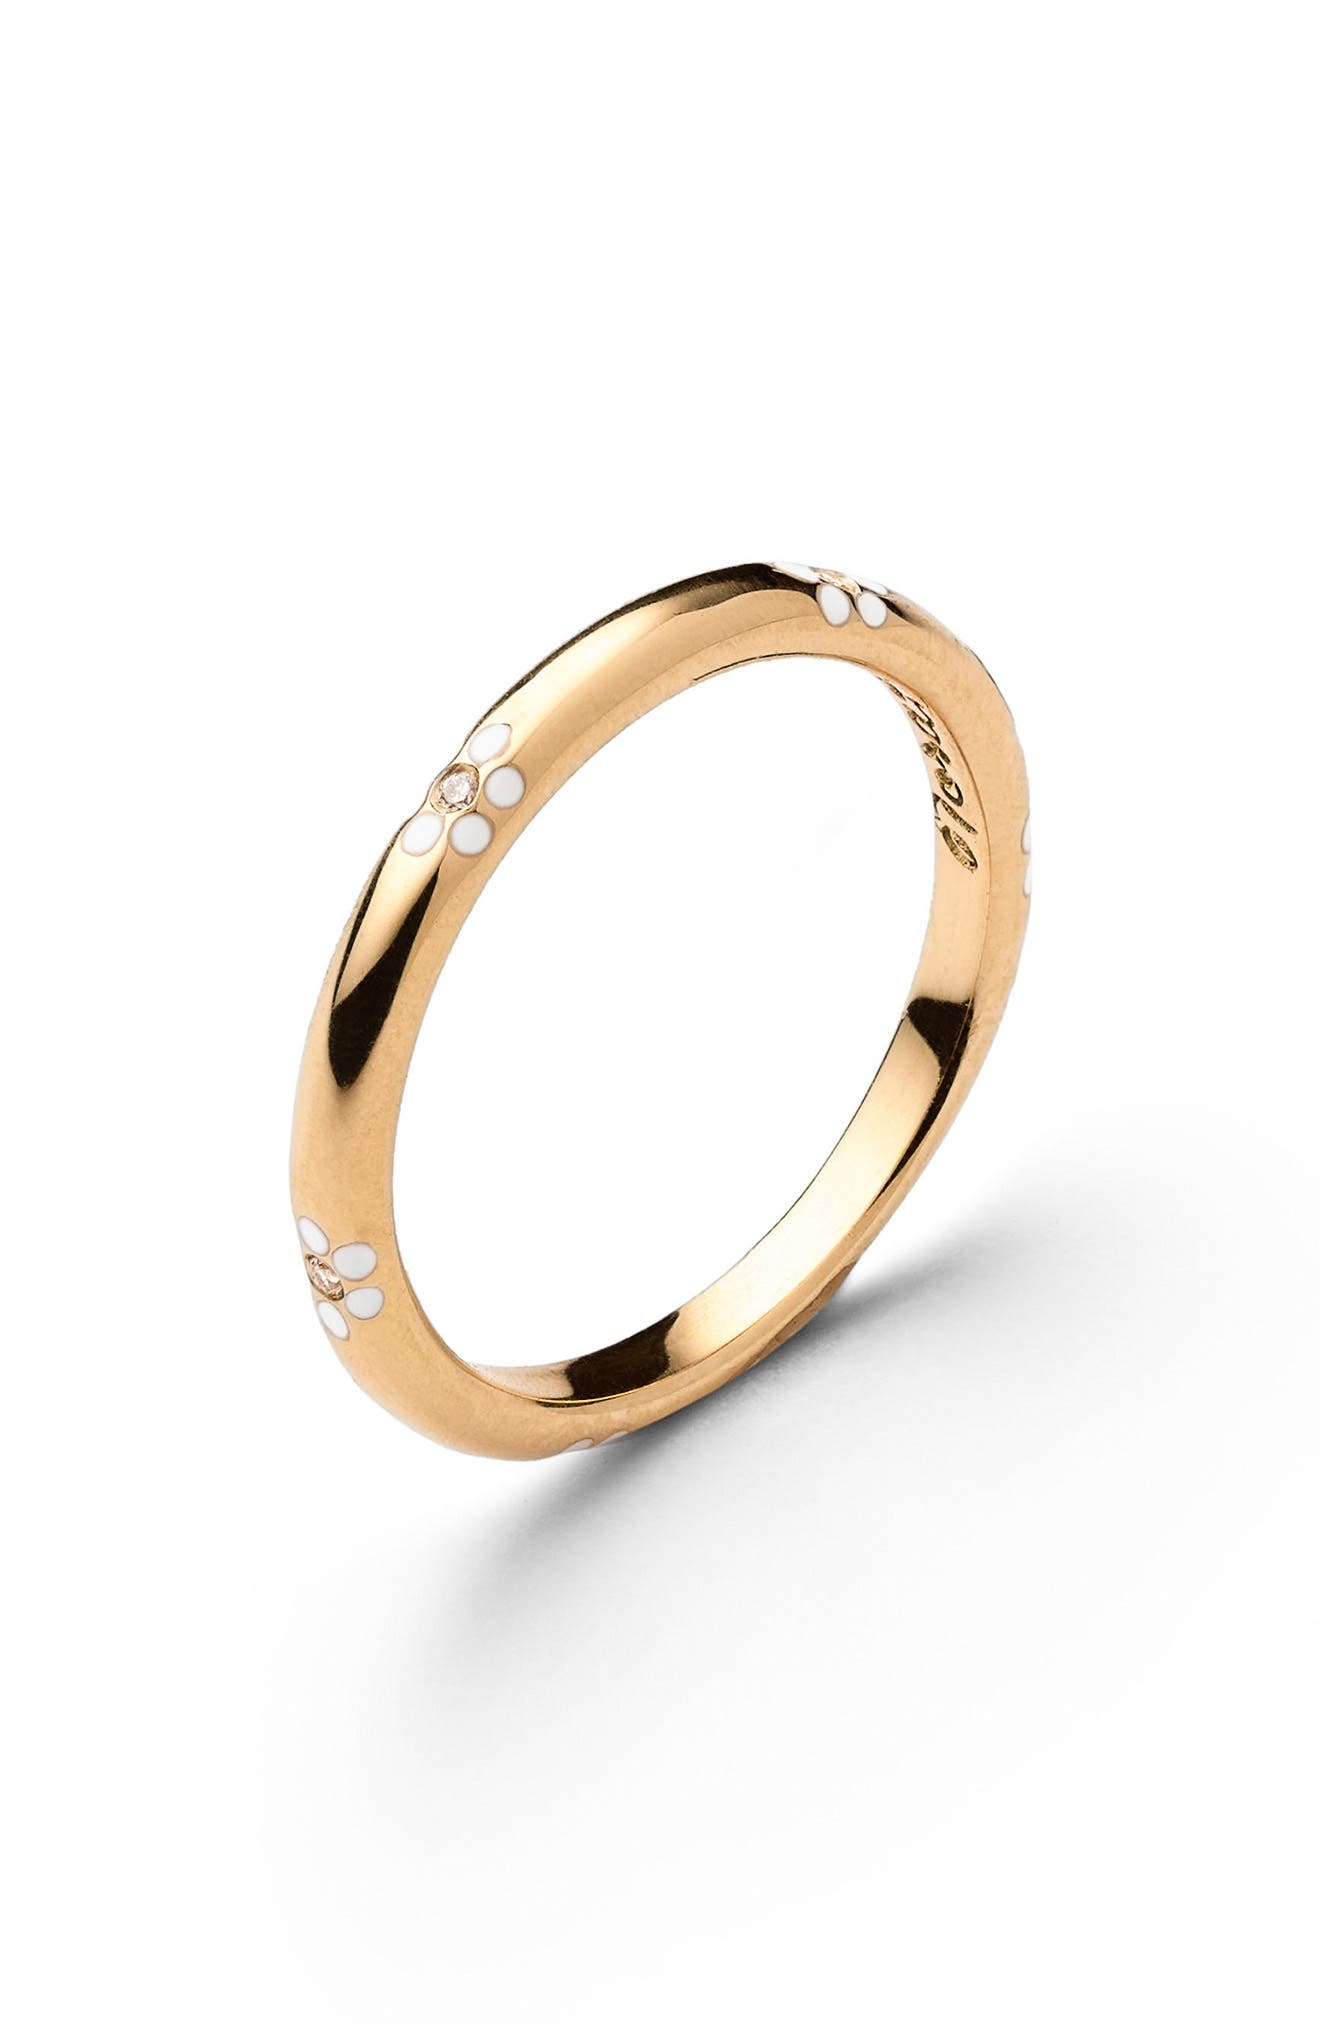 Miss Daisy Stackable Ring,                             Main thumbnail 1, color,                             YELLOW GOLD